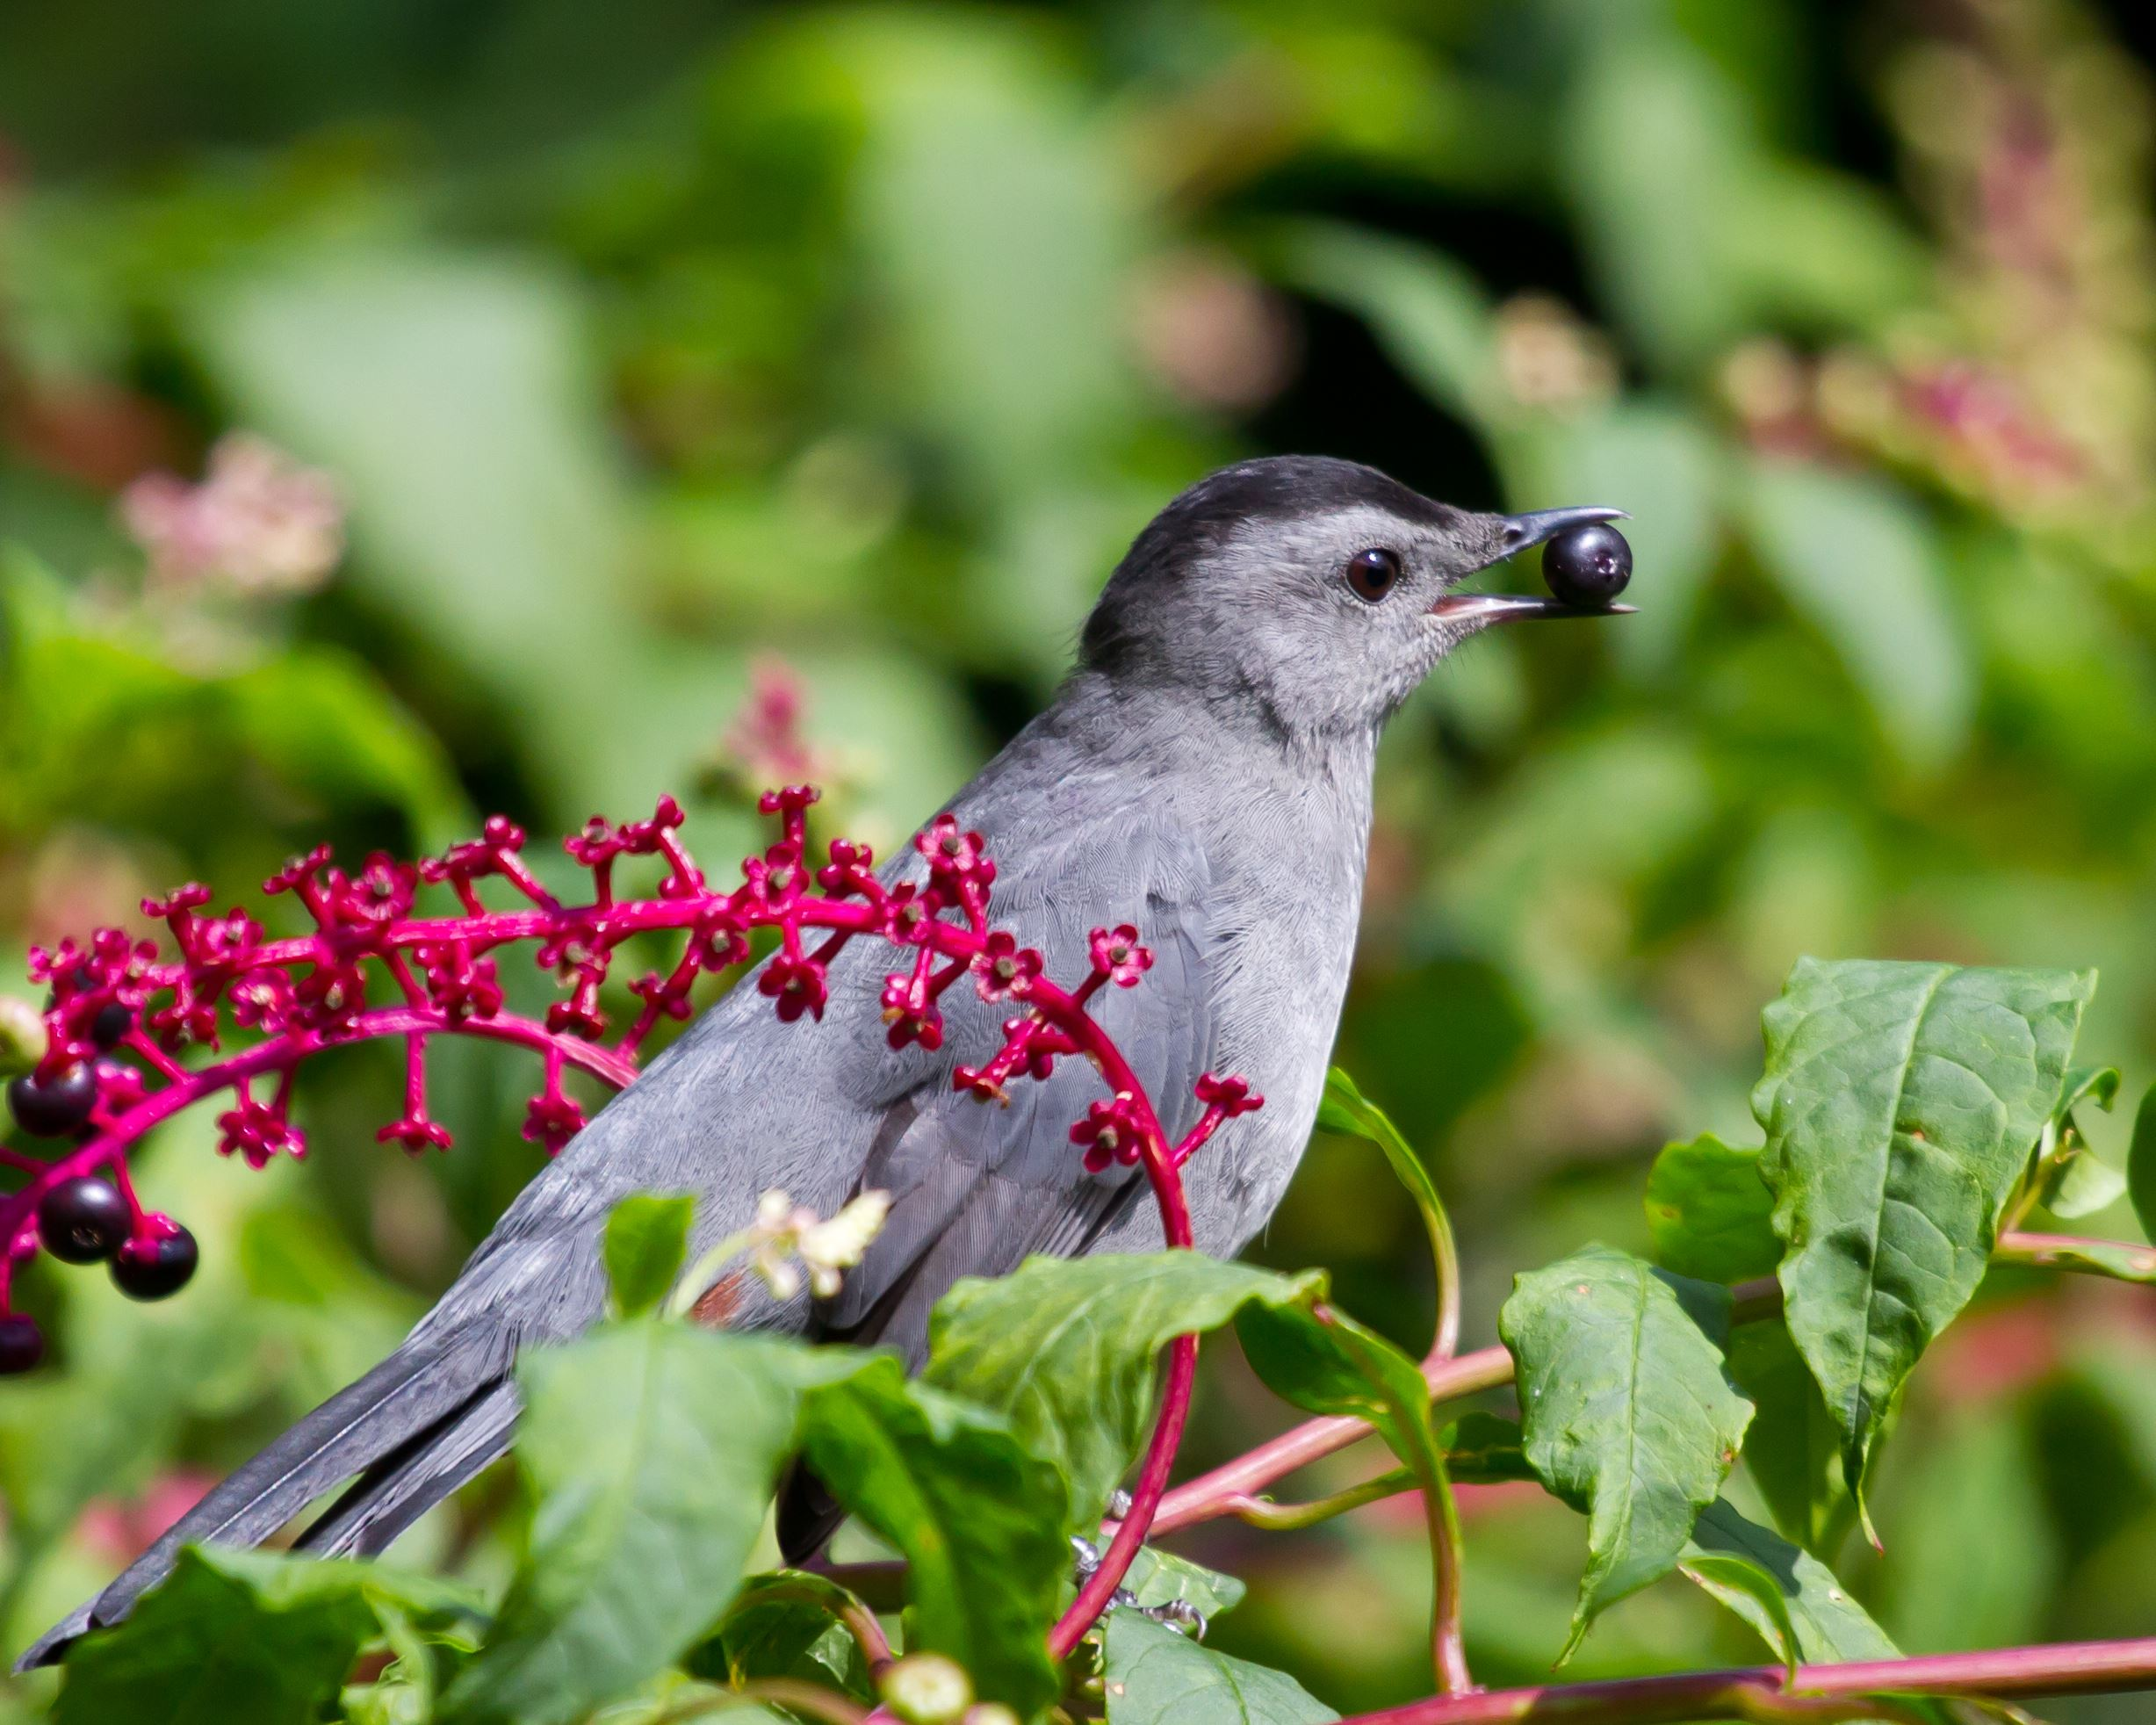 Gray Catbird on branch eating berry